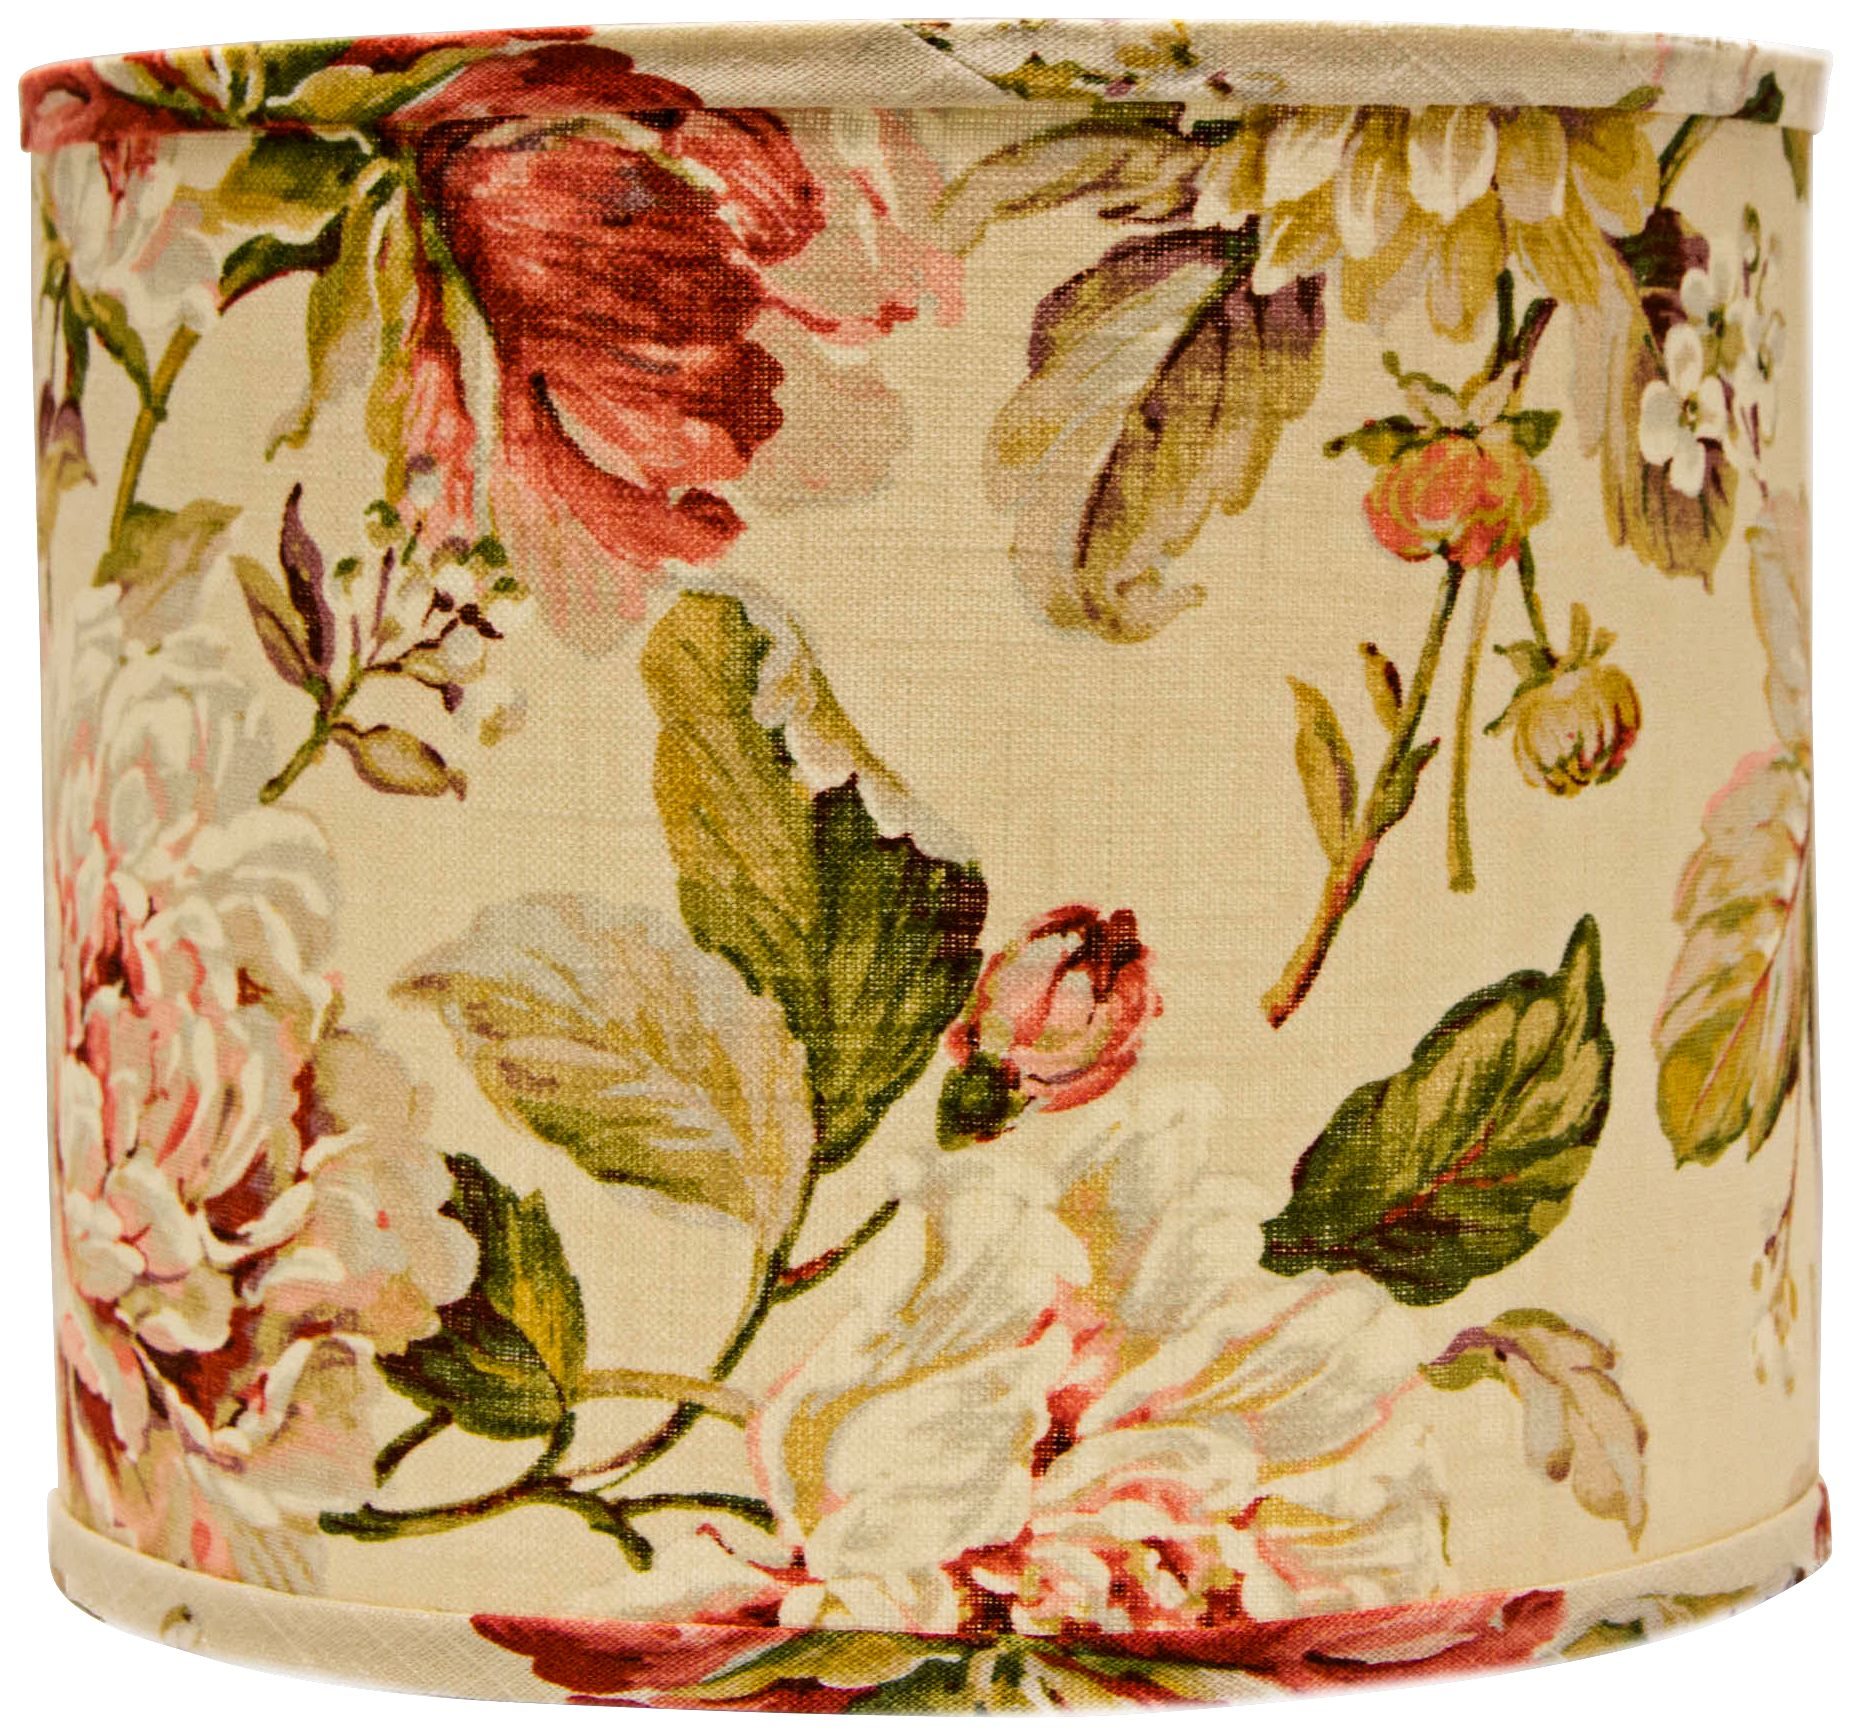 Large Rose Floral Drum Lamp Shade 14x14x11 (Spider)